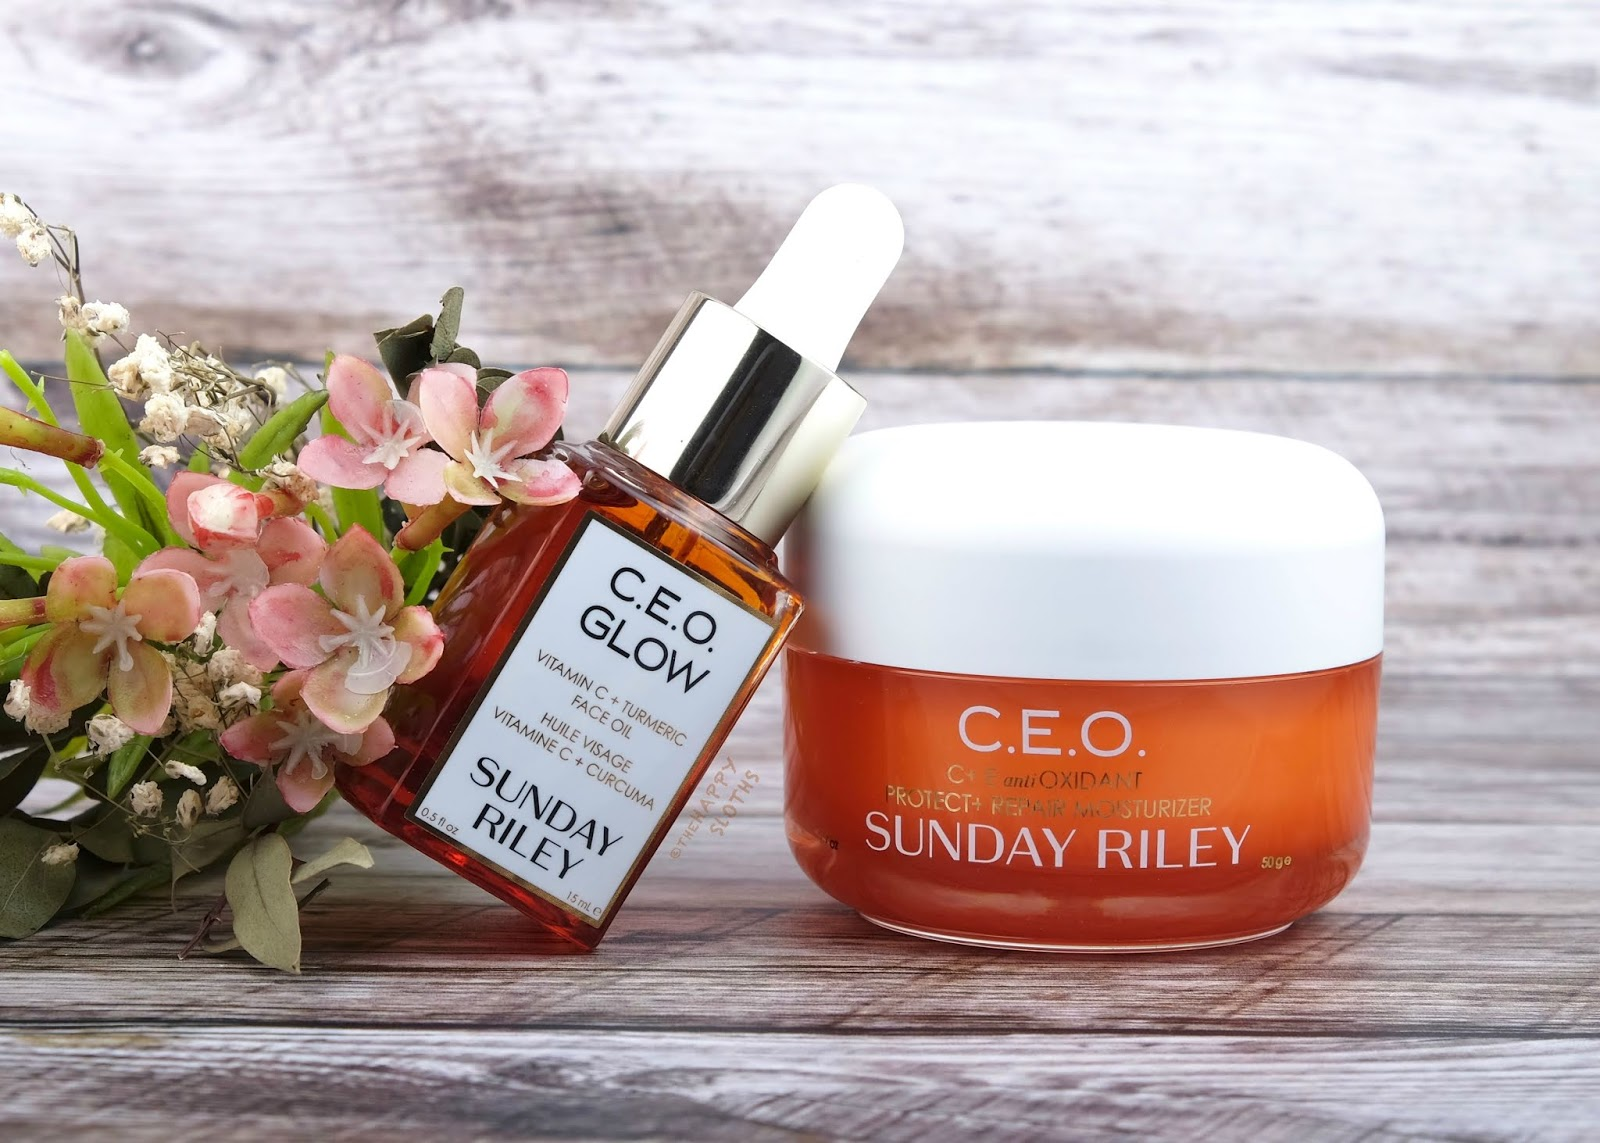 Sunday Riley C E O Glow Vitamin C Turmeric Face Oil C E O Vitamin C Rich Hydration Cream Review The Happy Sloths Beauty Makeup Review Blog Swatches Beauty Product Reviews